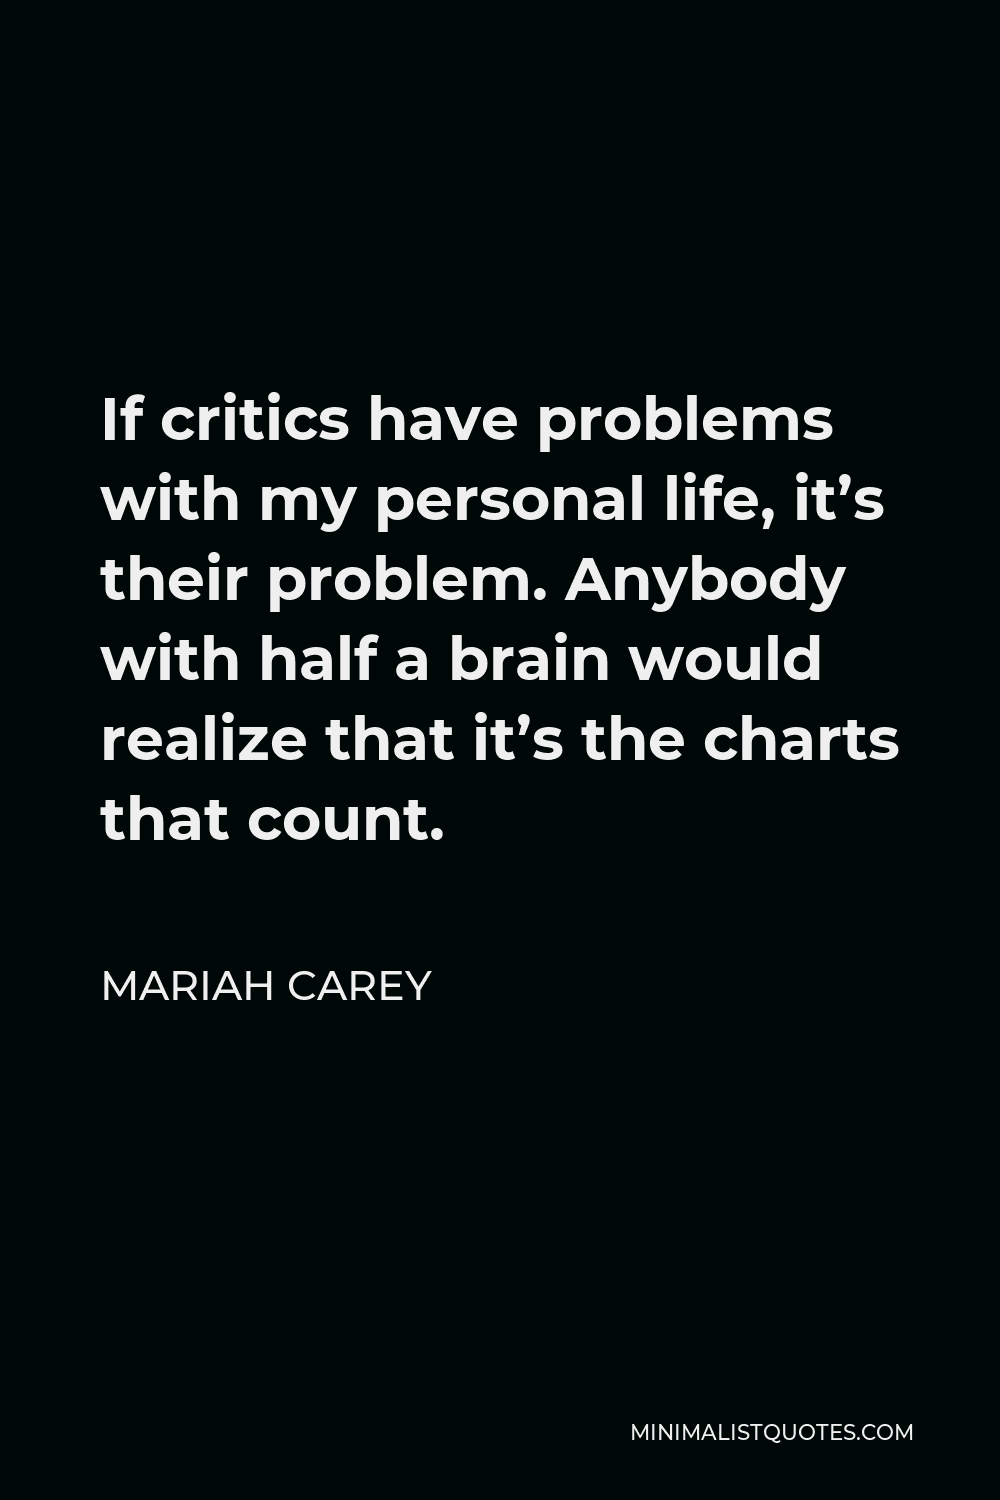 Mariah Carey Quote - If critics have problems with my personal life, it's their problem. Anybody with half a brain would realize that it's the charts that count.